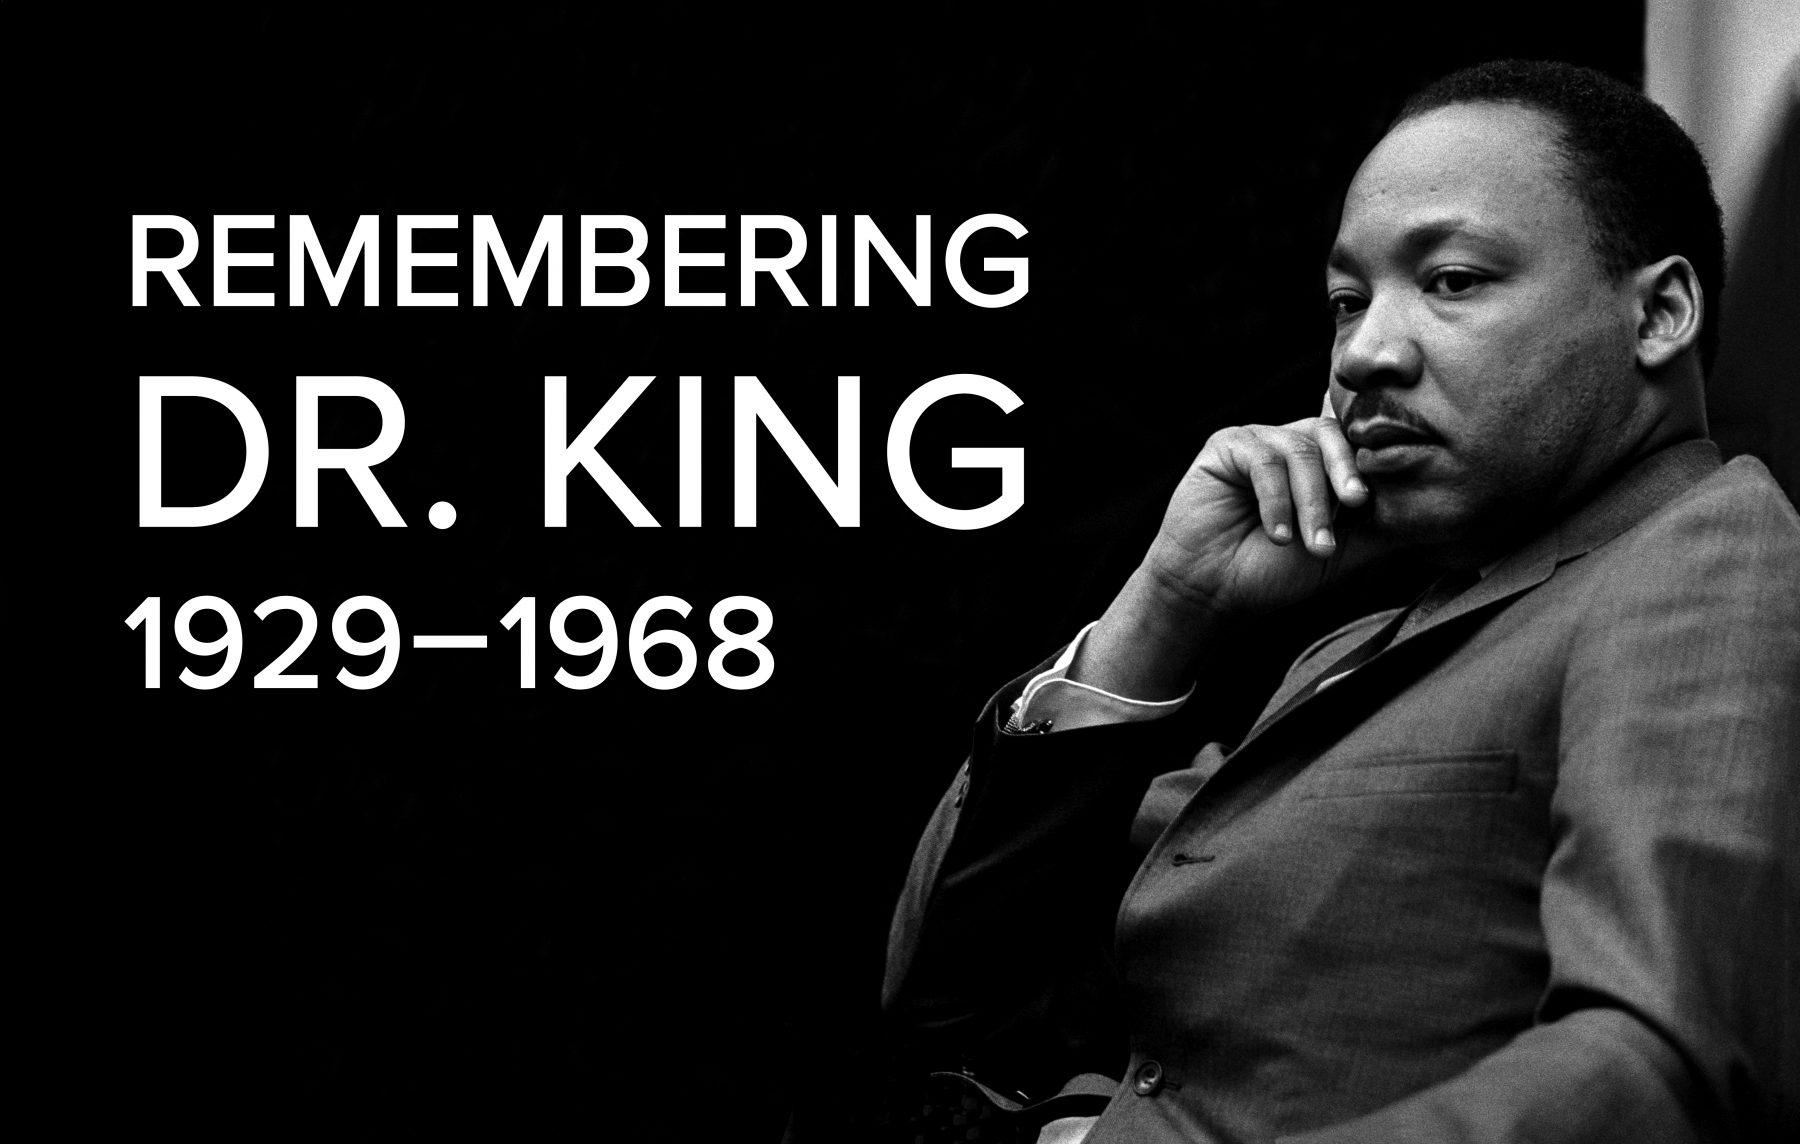 Remembering Dr King >> Remembering Dr King 1929 1968 Chicago History Museum